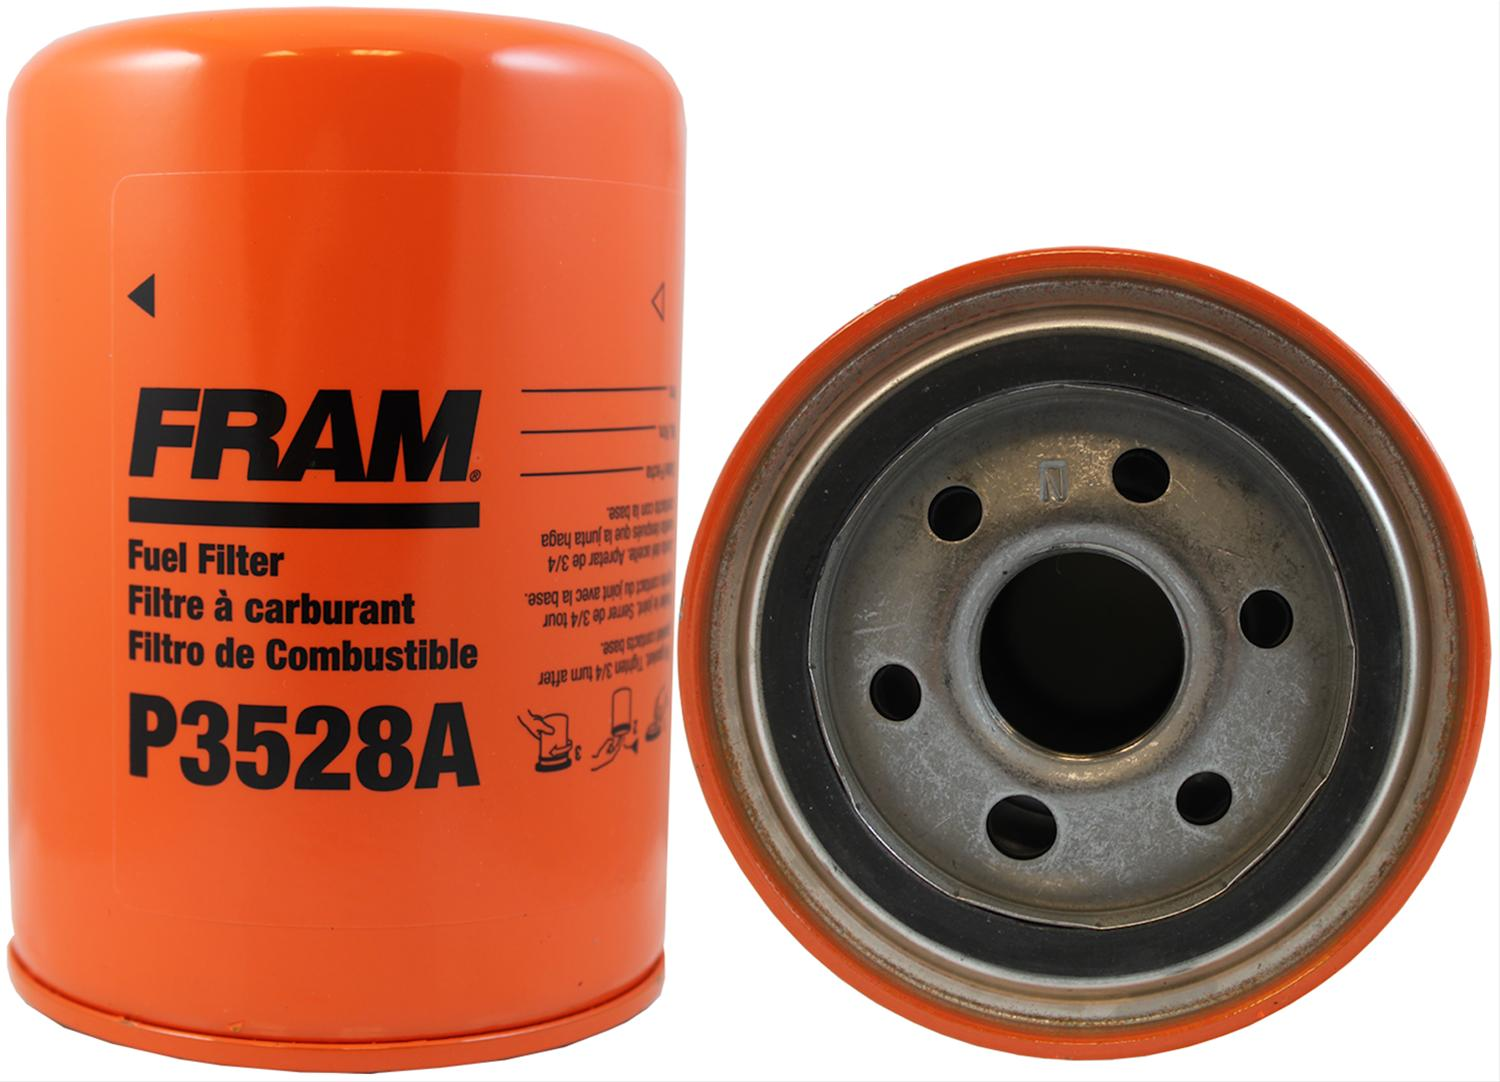 fram fuel filters p3528a - free shipping on orders over $99 at summit racing